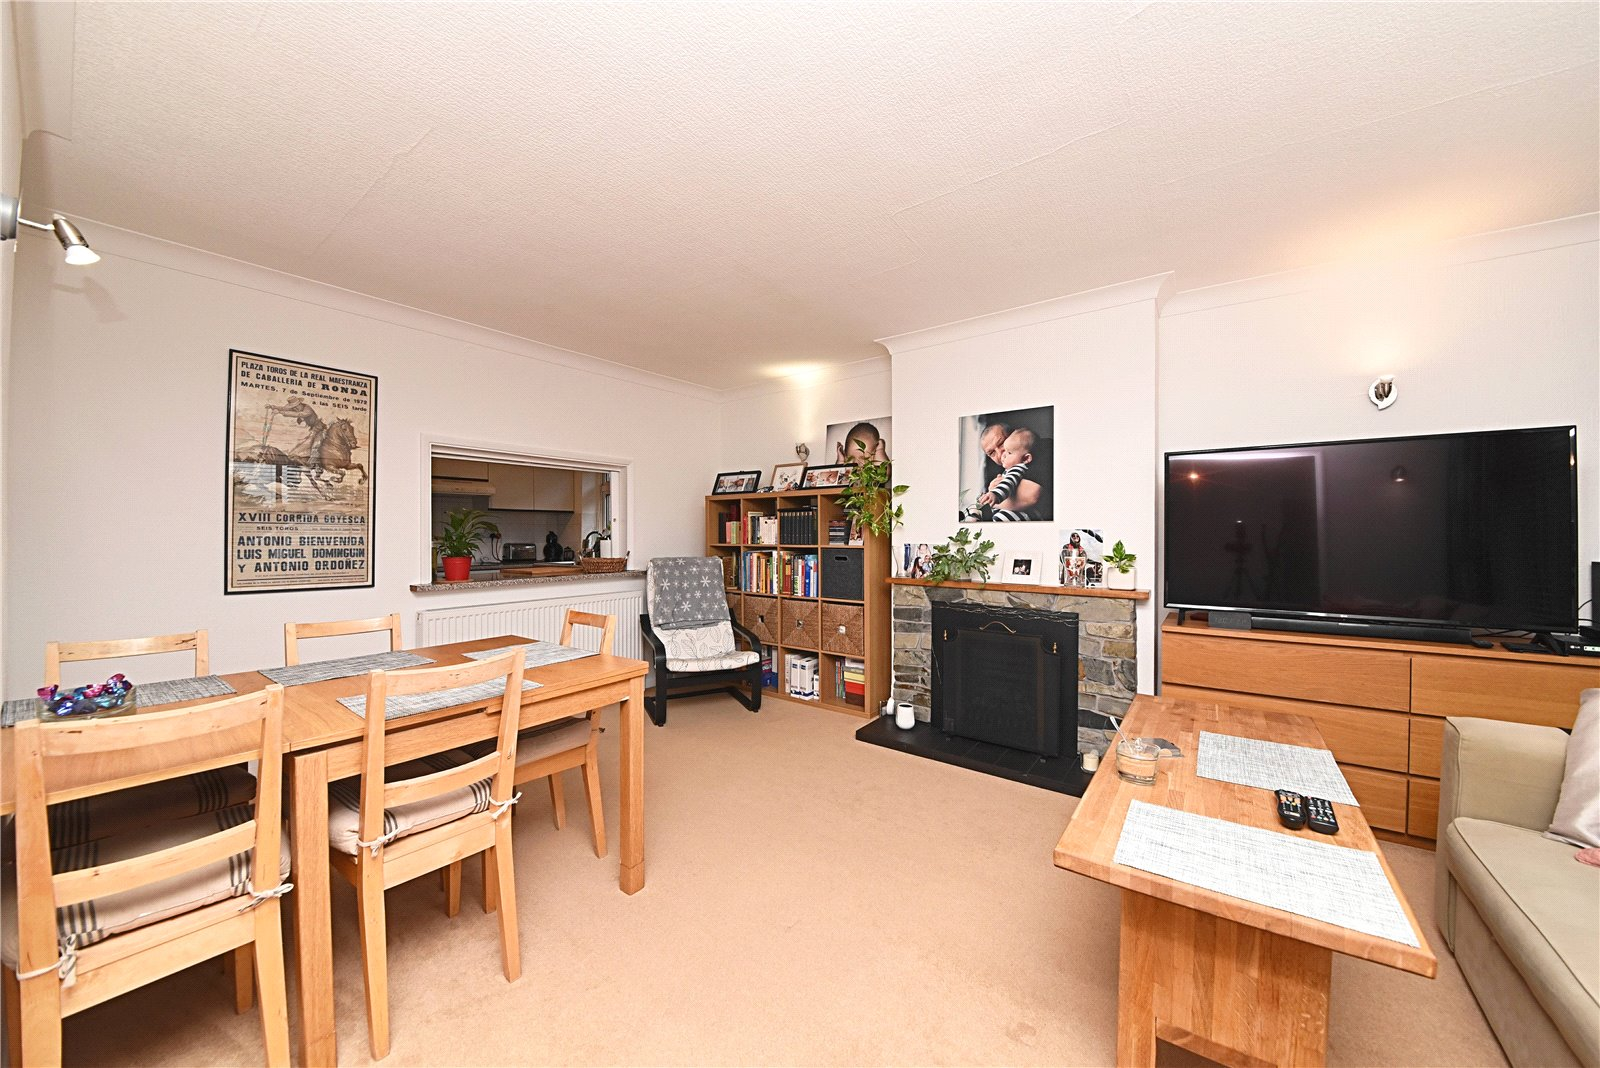 2 bed bungalow for sale in Barnet, EN4 9QT 1